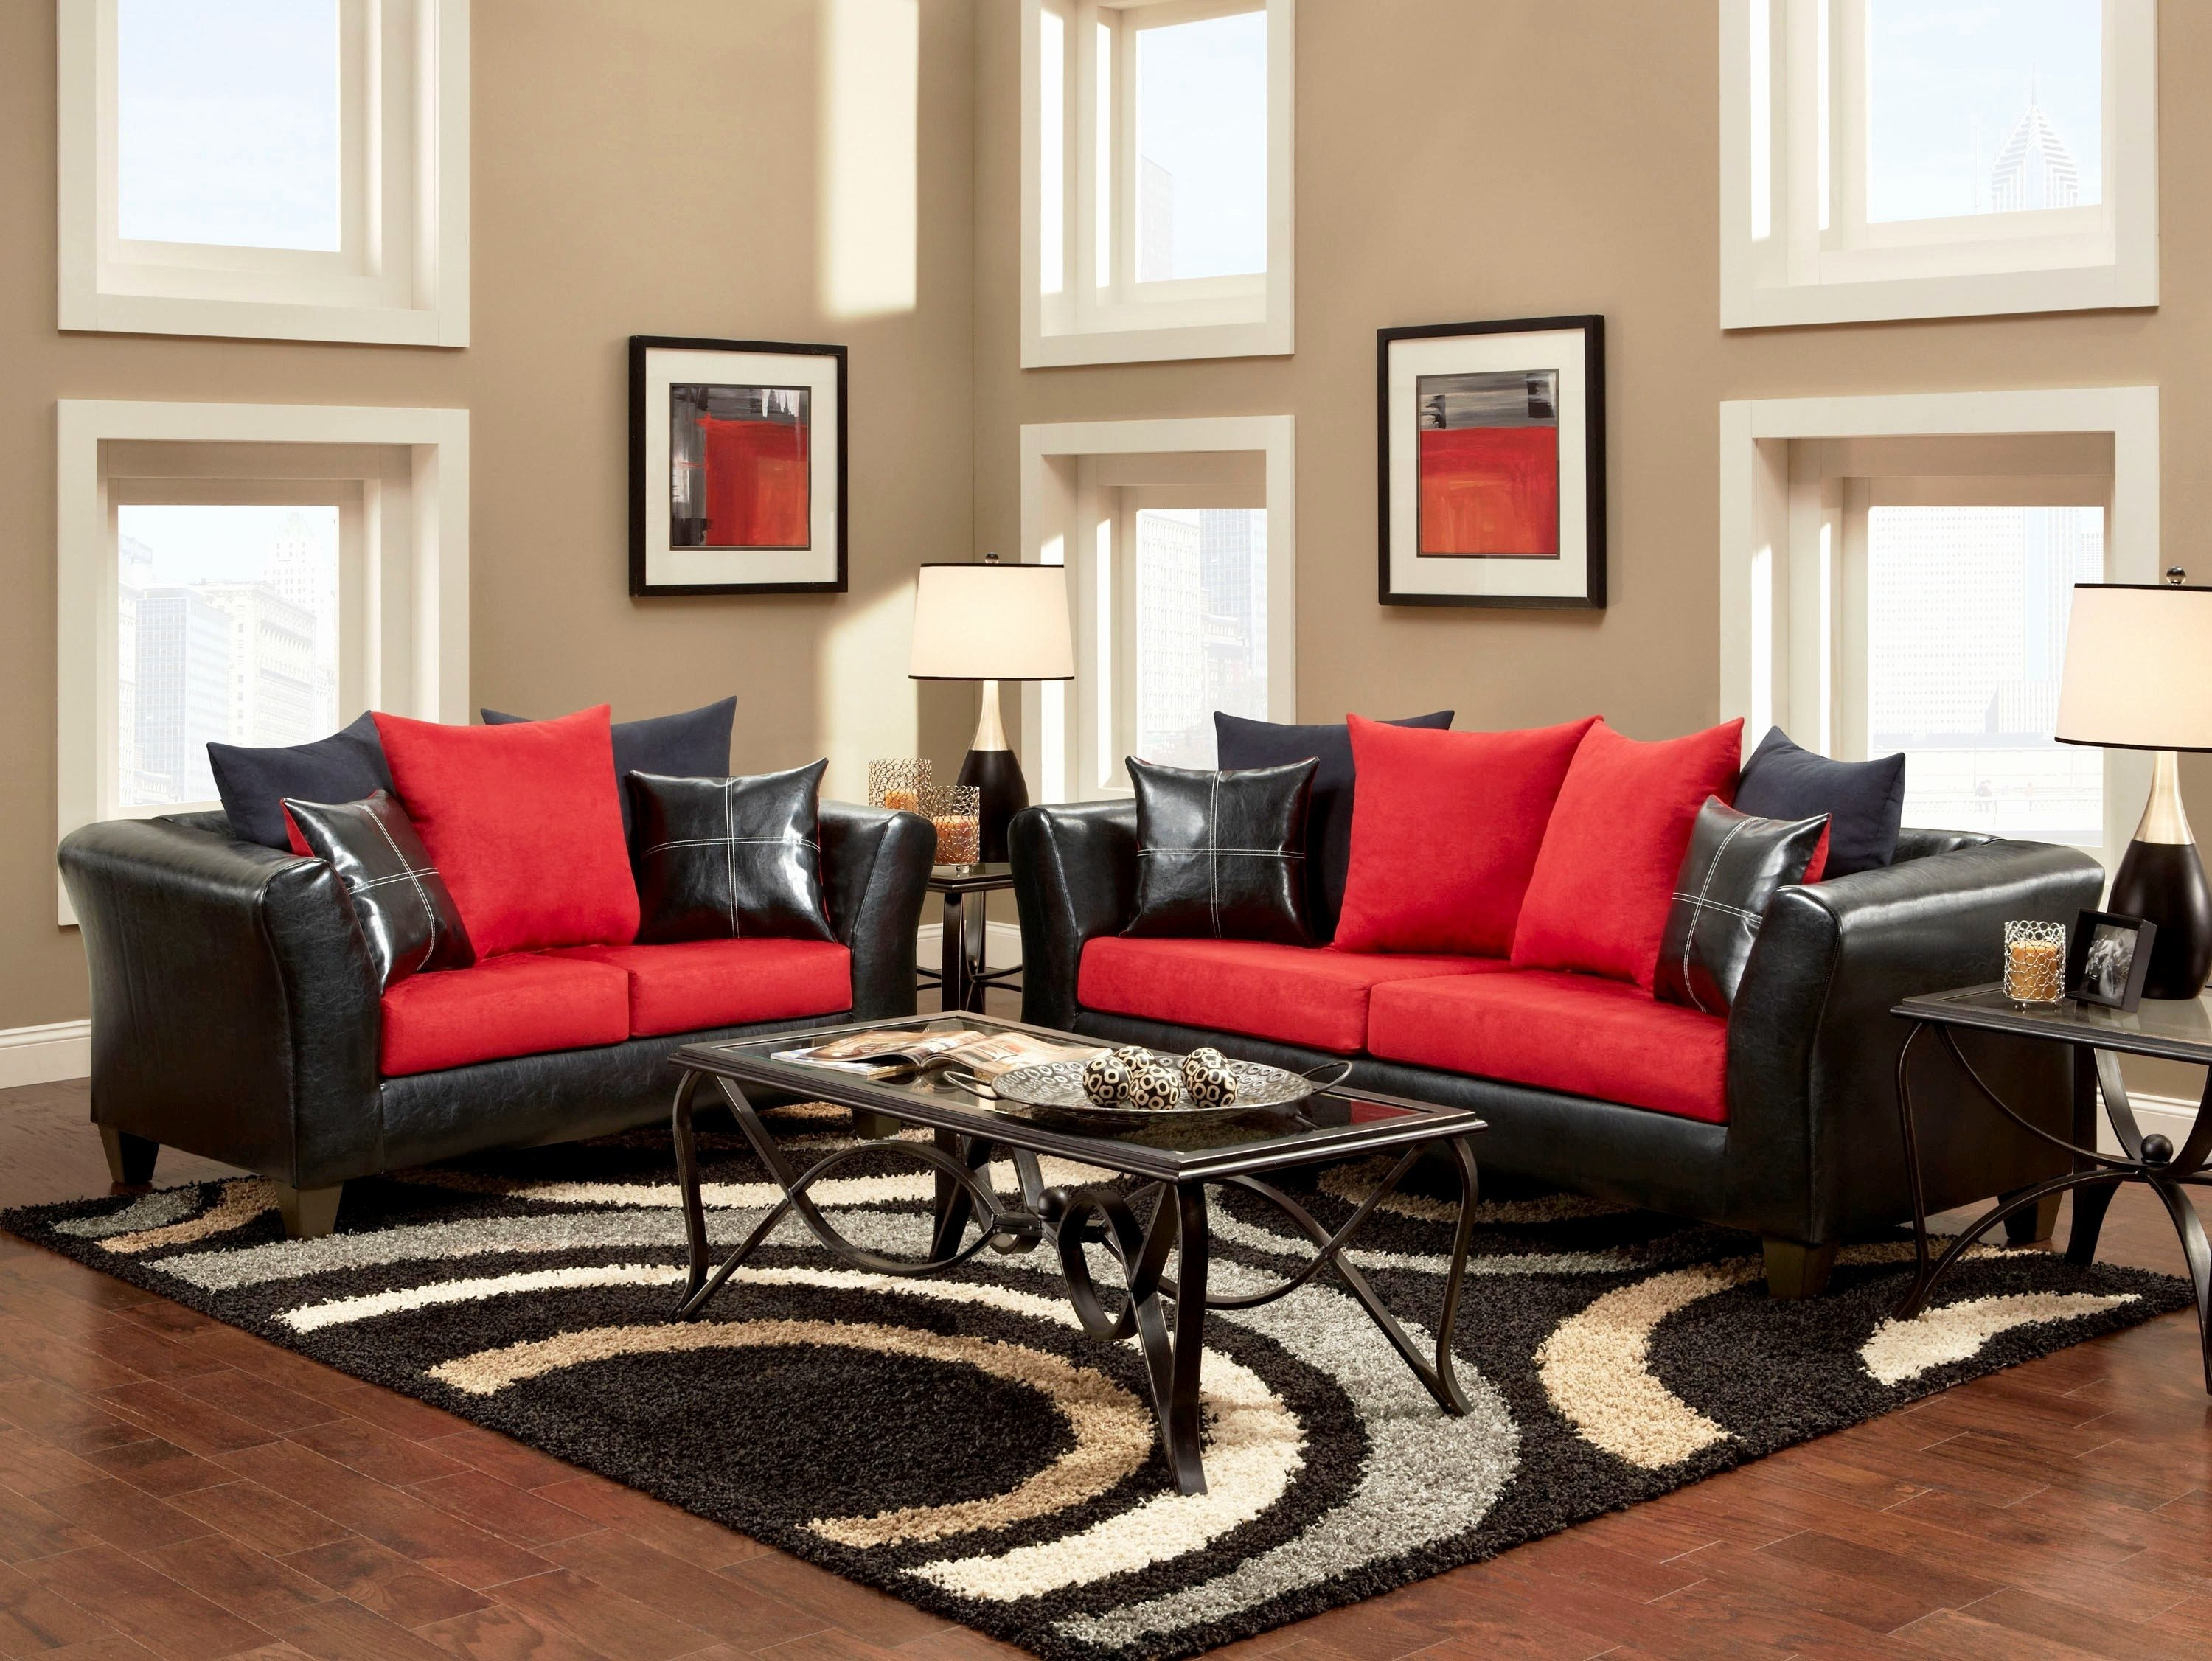 10 Beautiful Red And Black Living Room Ideas living room gray and red living room white couch living room red 2020